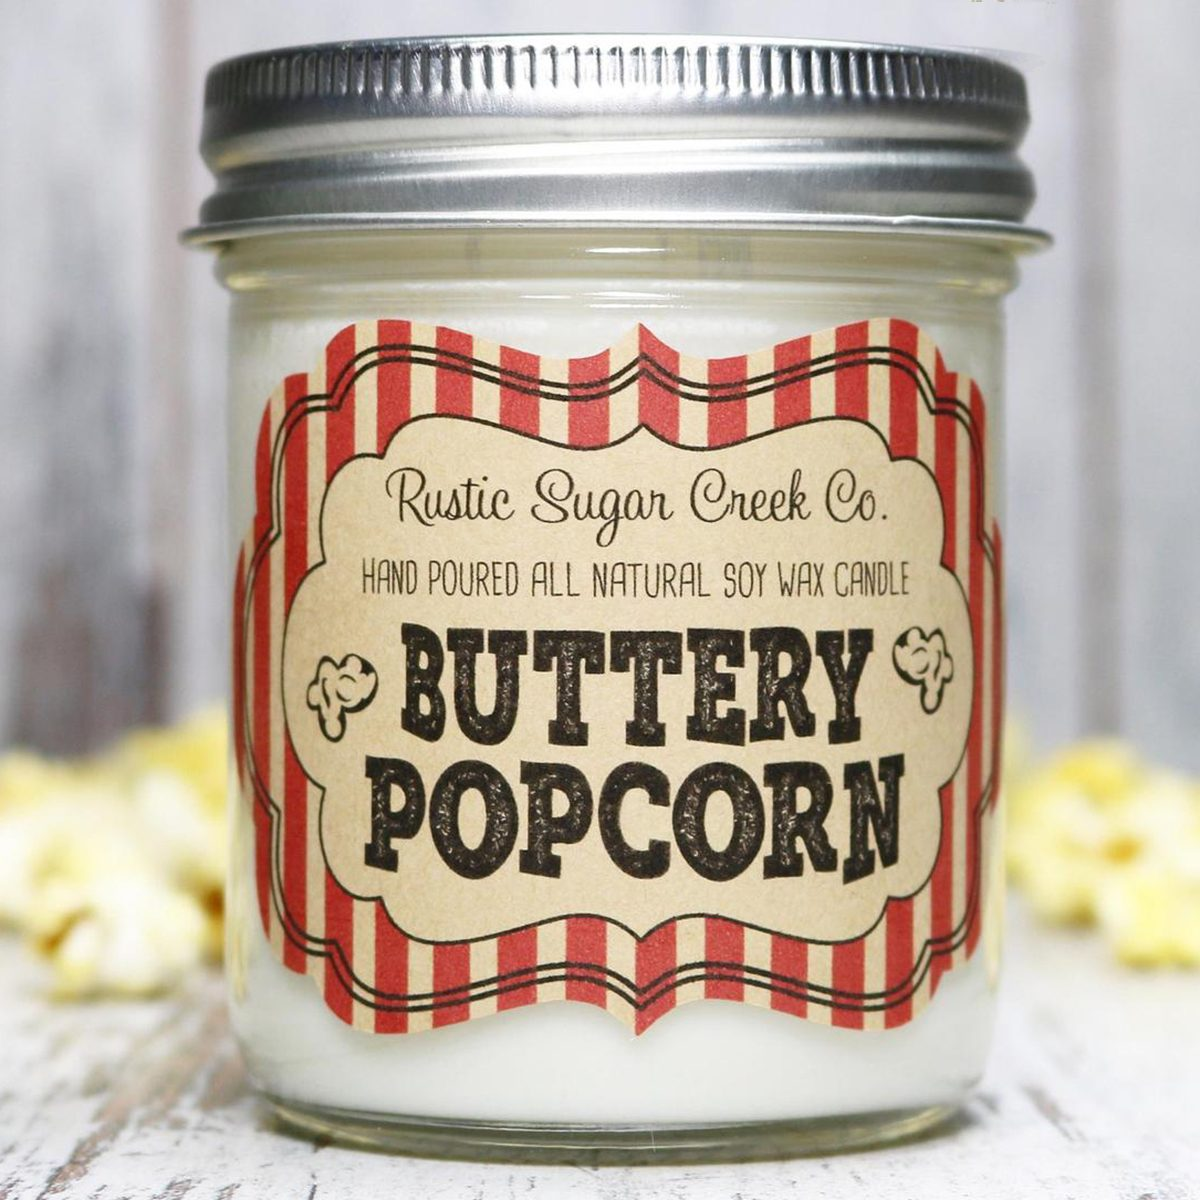 Buttery Popcorn Scented Soy Wax Candle, Popcorn Candle, Mason Jar Candle, Candle Gift, Movie Night Popcorn Candle